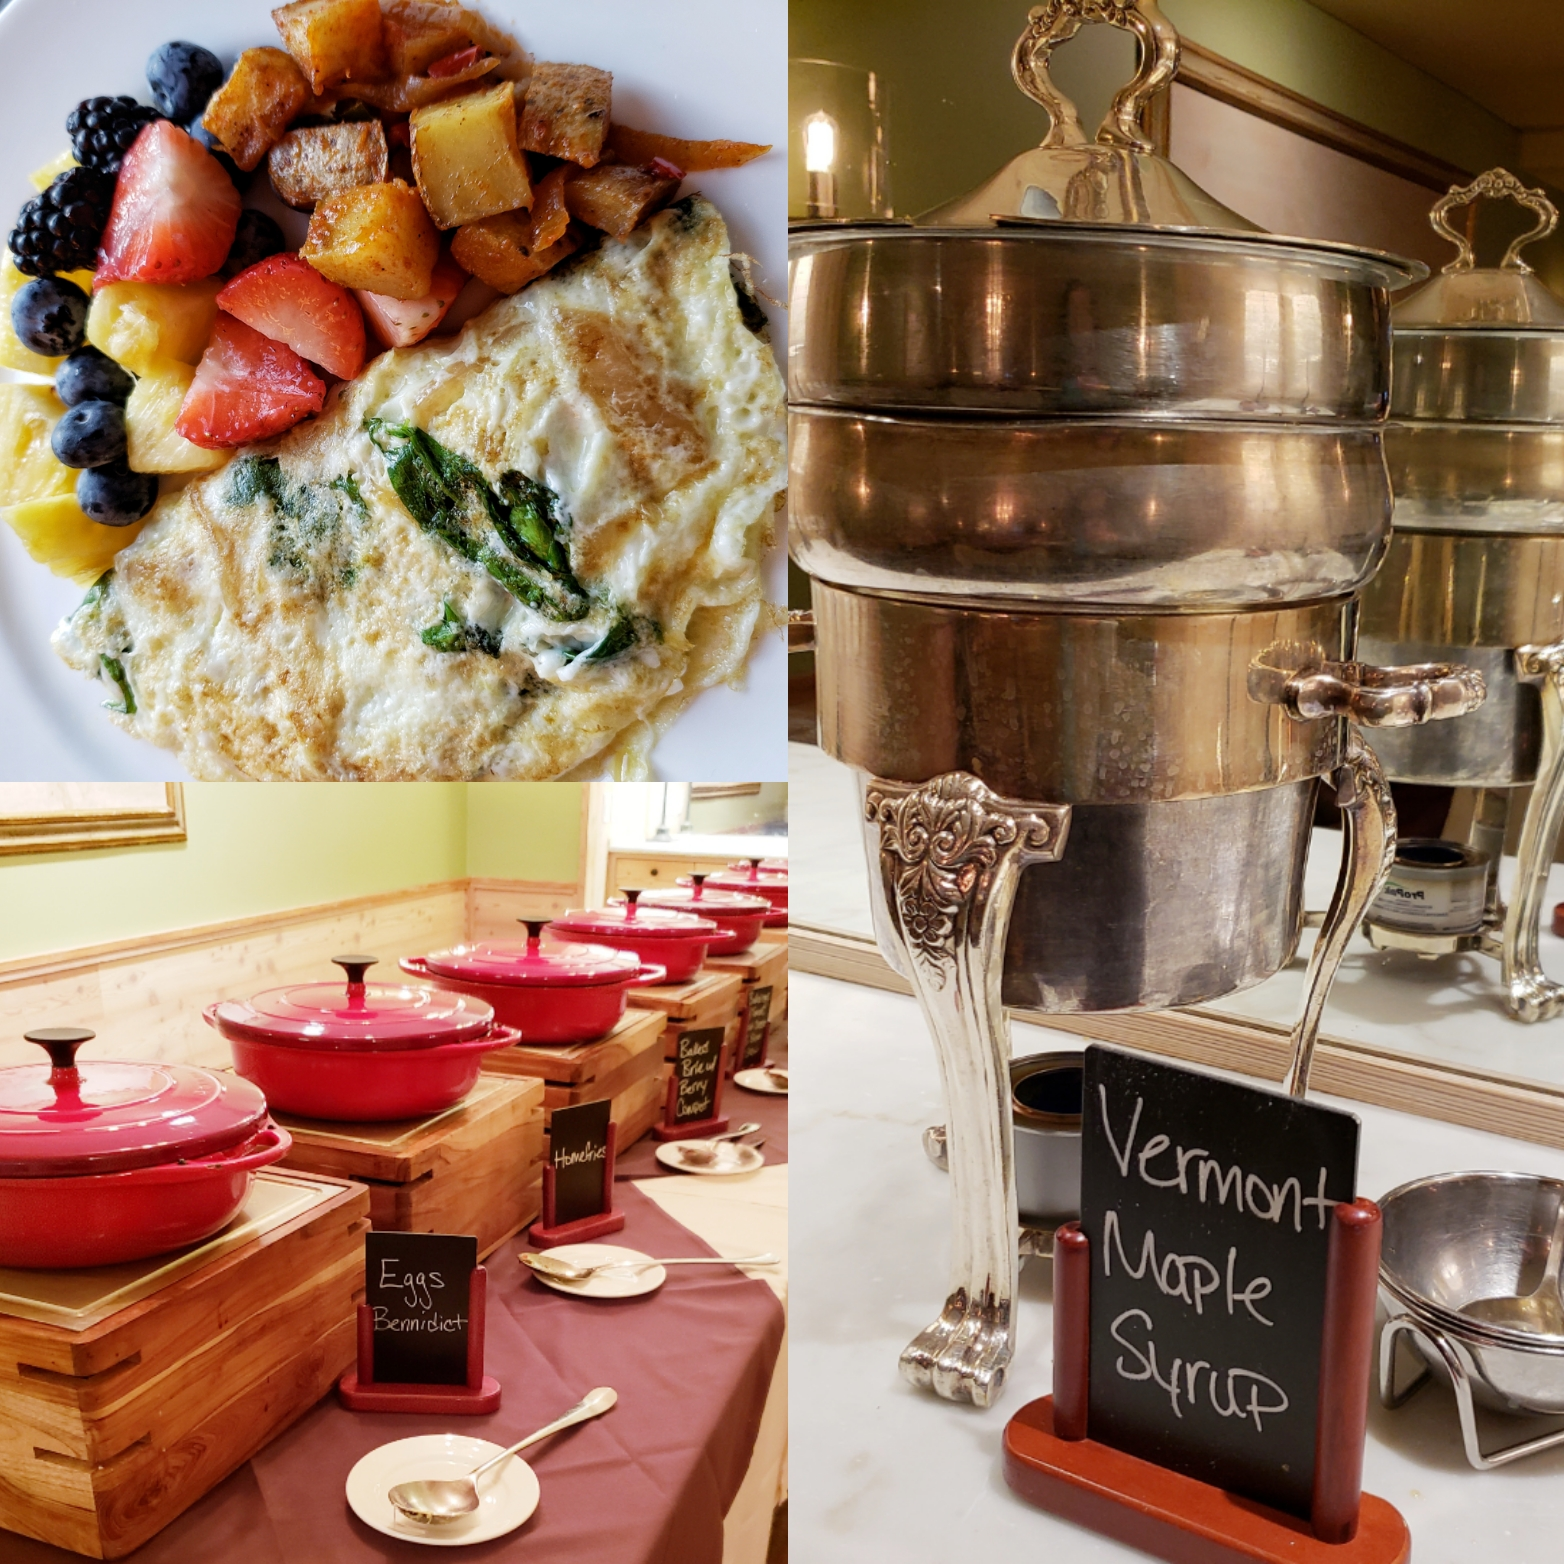 Buffet breakfast at the Woodstock Inn & Resort in Woodstock, VT; there's a whole separate food room not shown in this collage!